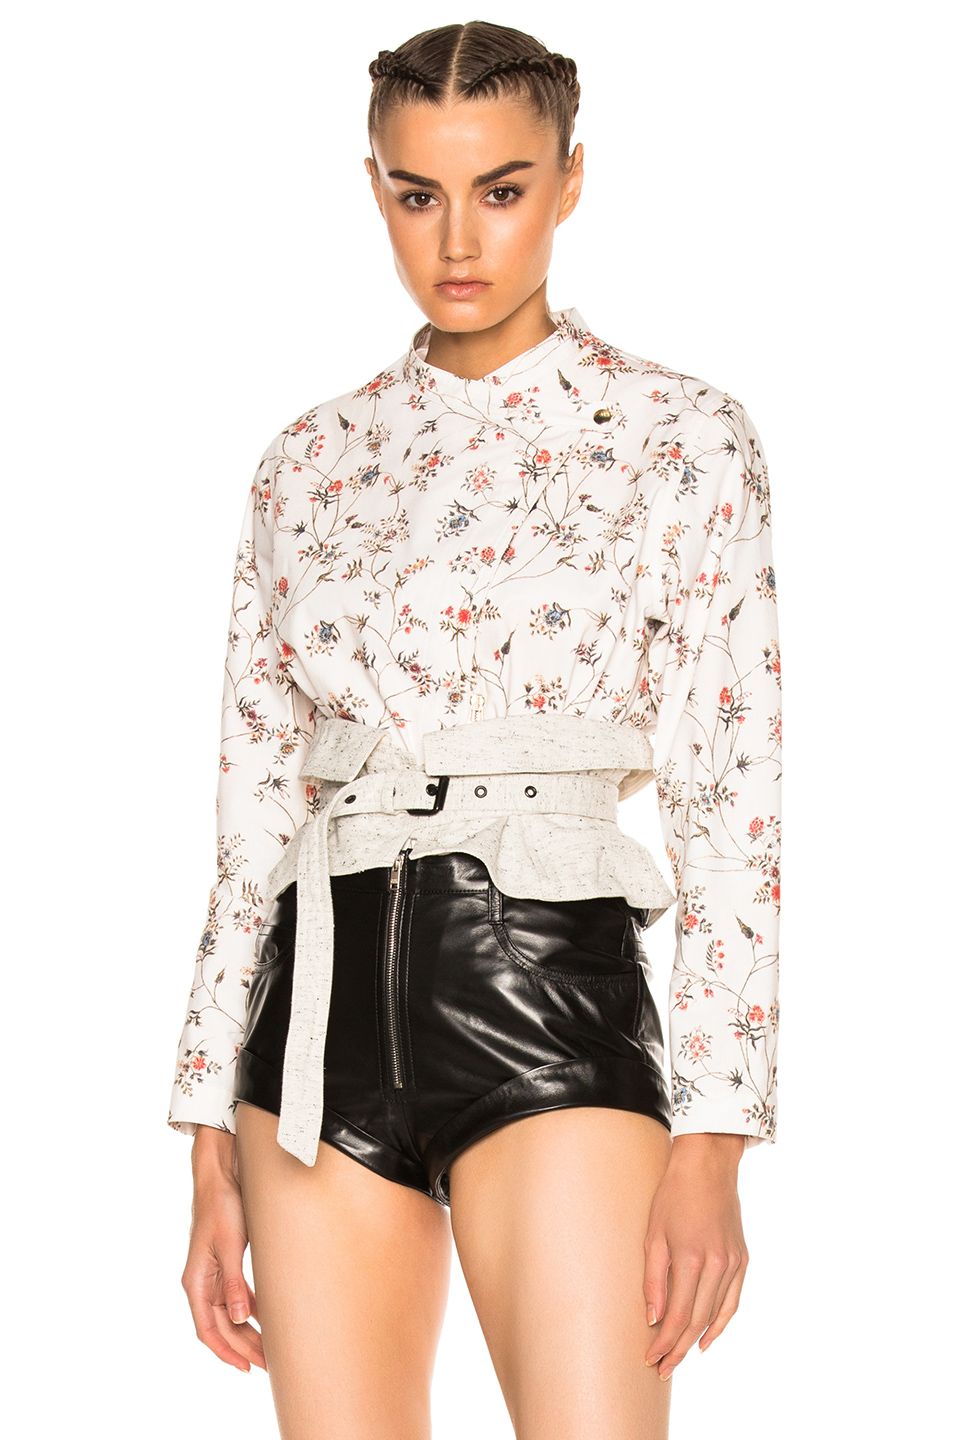 Isabel Marant Teo Jacket in Floral,White